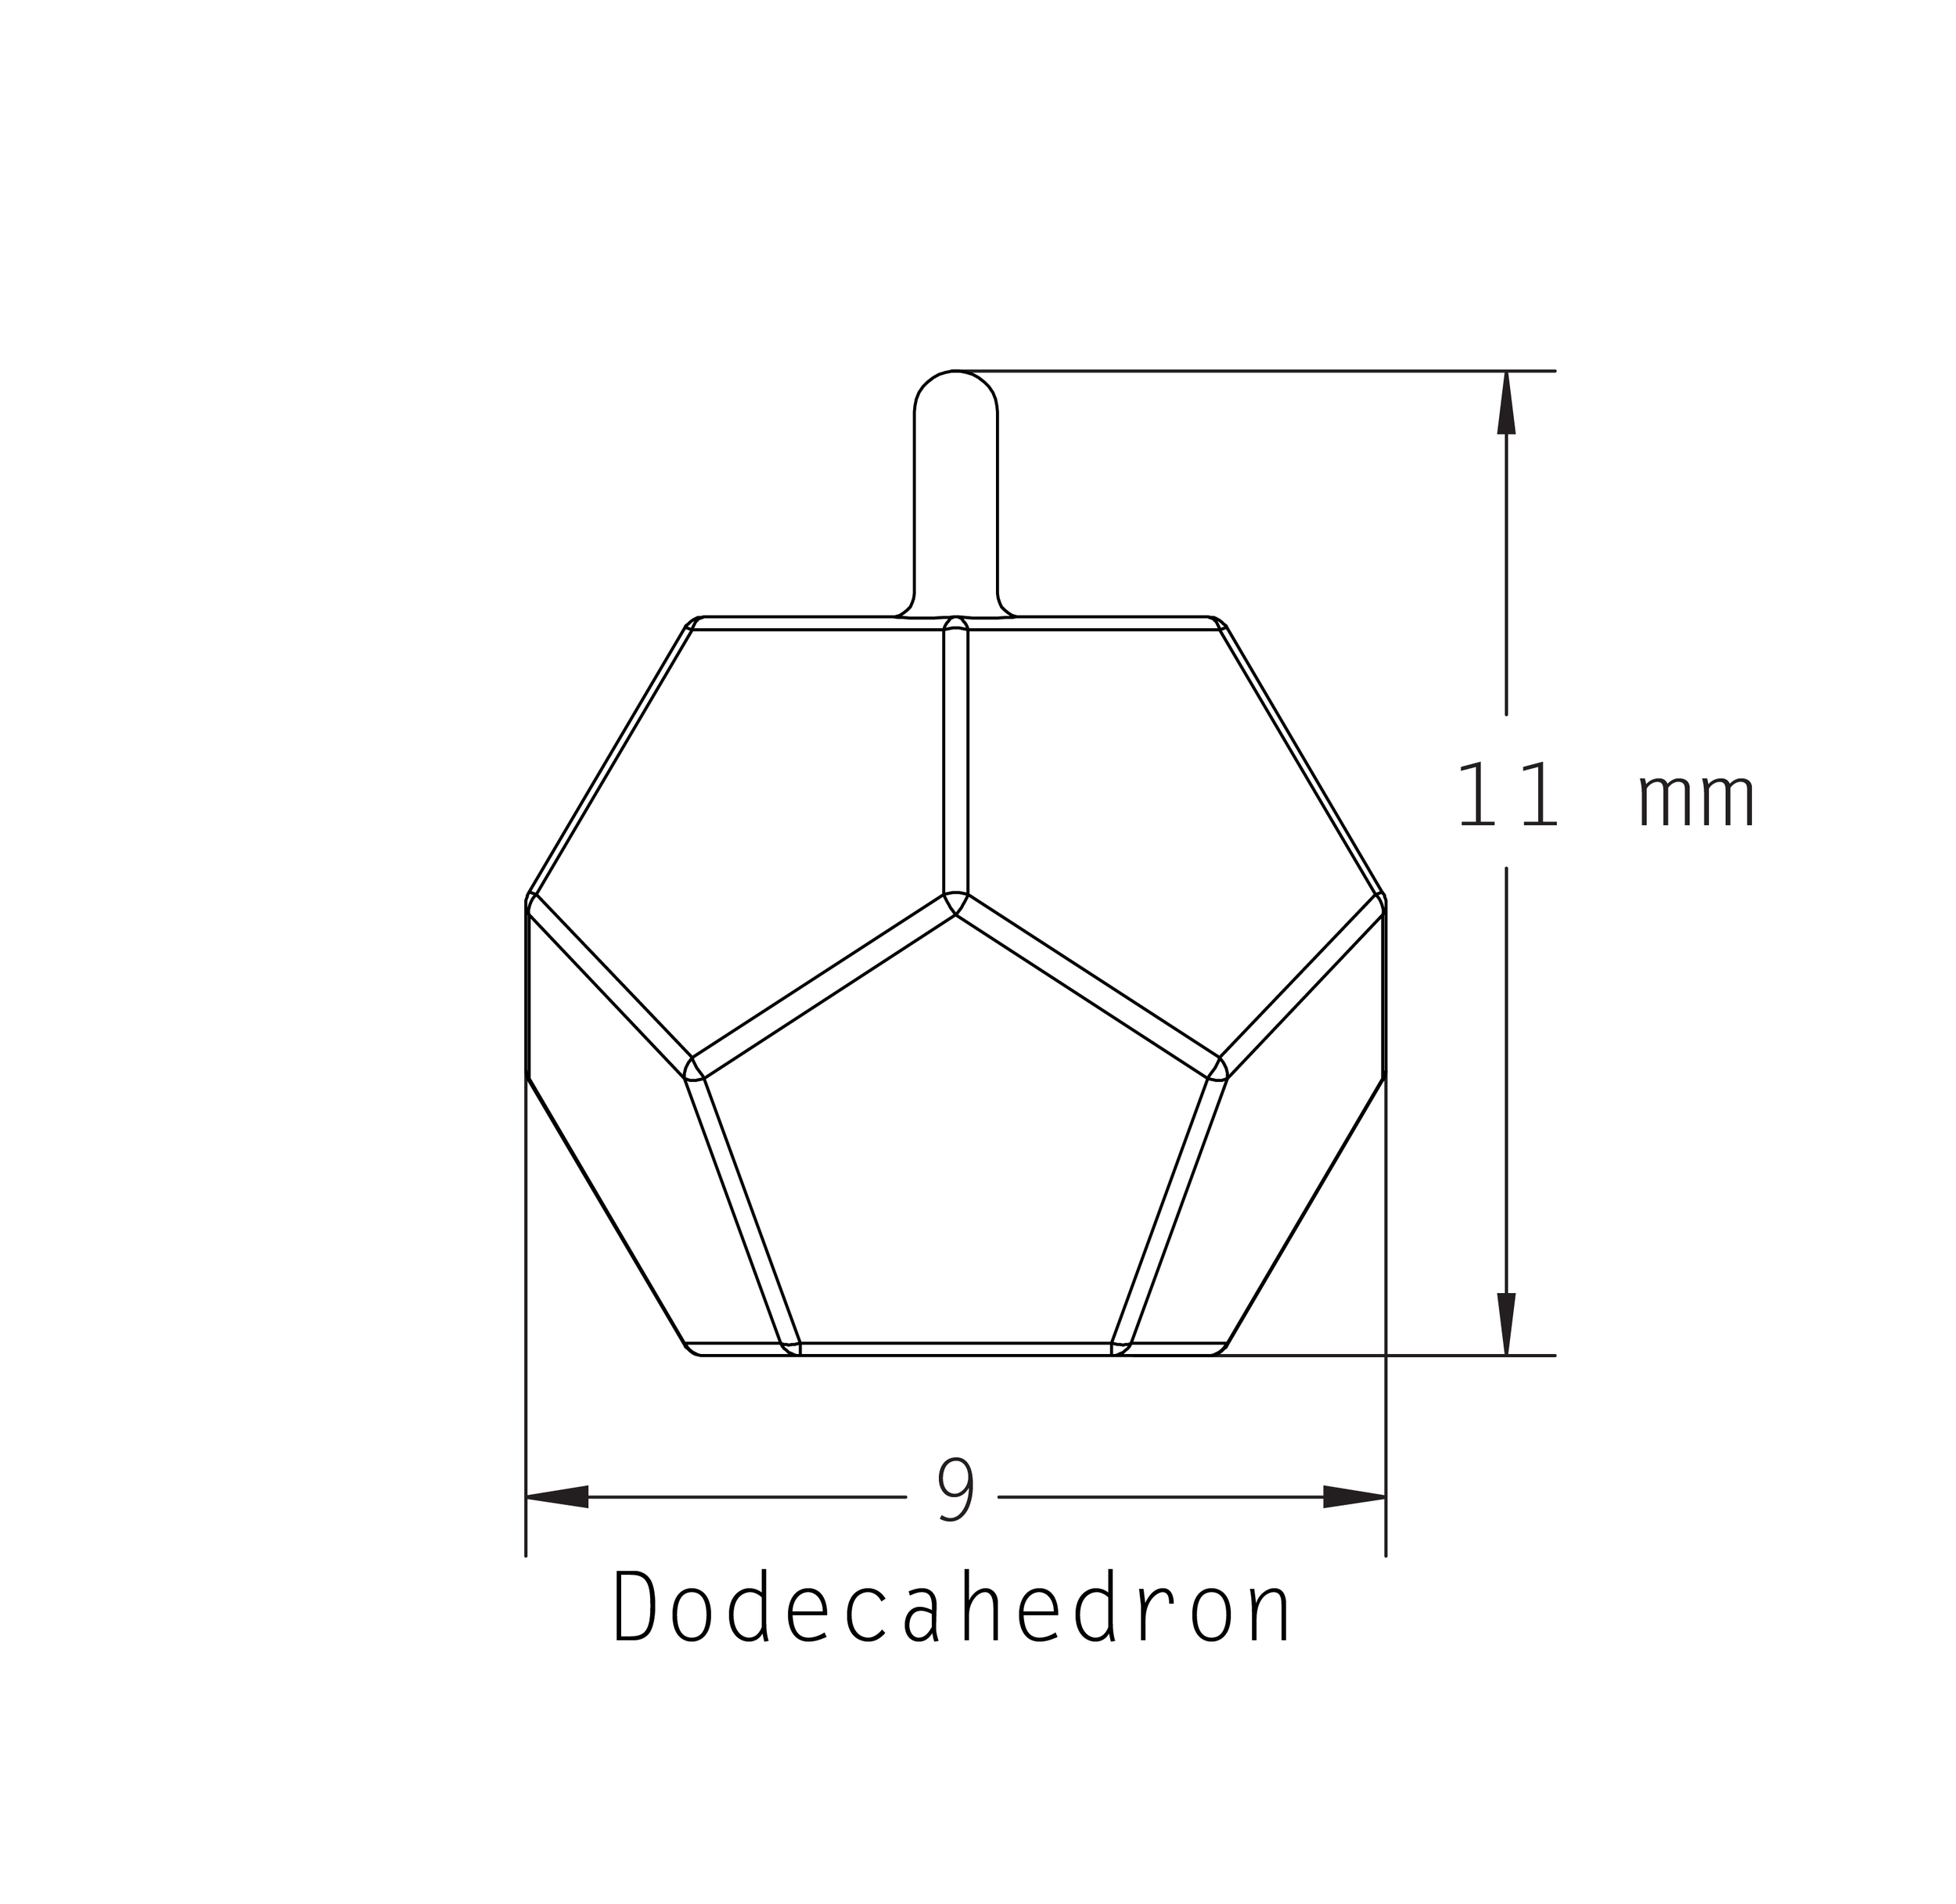 Dodecahedron_Scale Drawing-01.png